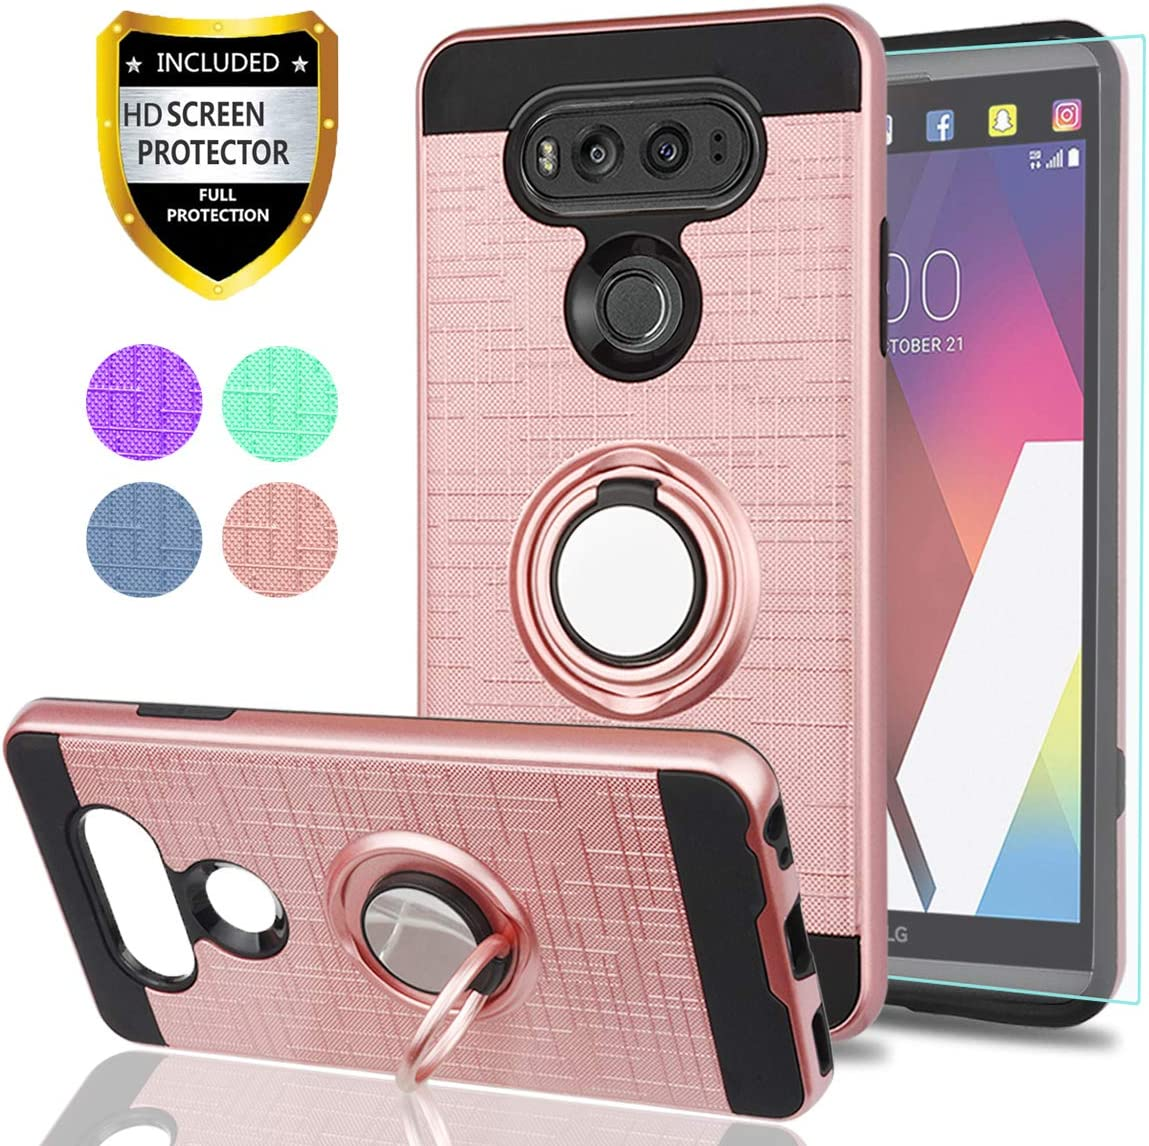 LG V20 Phone Cases,LG V 20 Case with HD Phone Screen Protector,Ymhxcy 360 Degree Rotating Ring & Bracket Dual Layer Resistant Back Cover for LG V20 (2016)-ZH Rose Gold